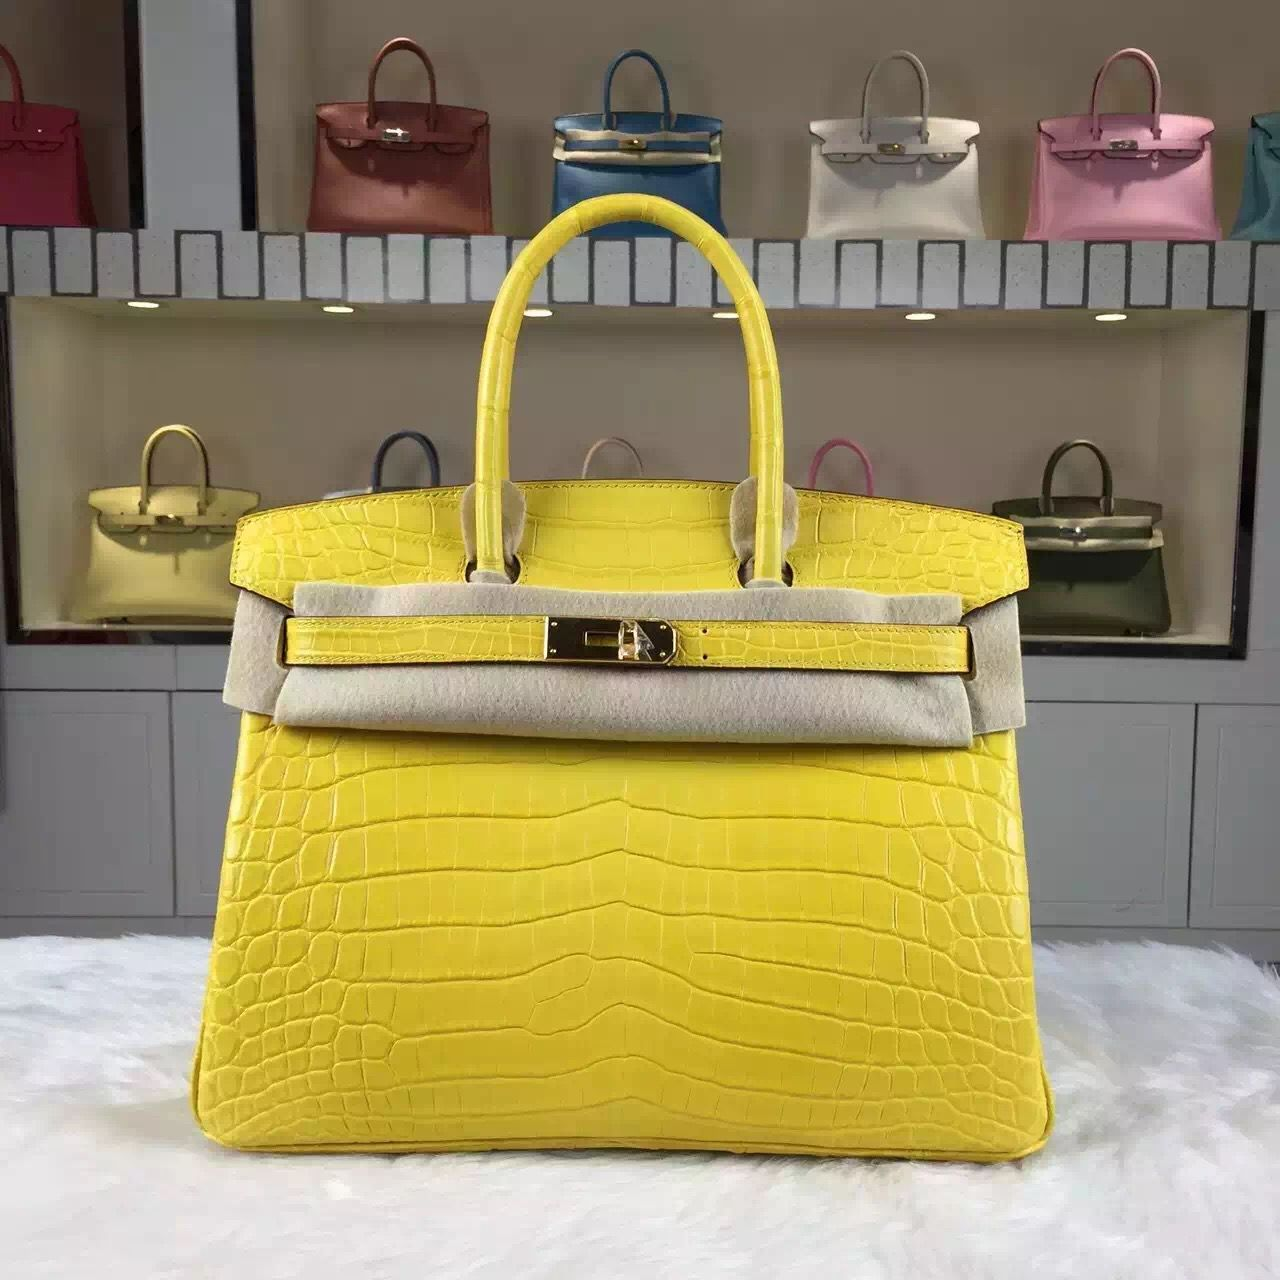 307d9ded3b Brand: Hermes; Style: Birkin Bag30cm; Material:Crocodile Matt Leather (HCP  original leather);Color: 9R Lemon Yellow; Hardware: Silver/Gold; Accessories:  ...